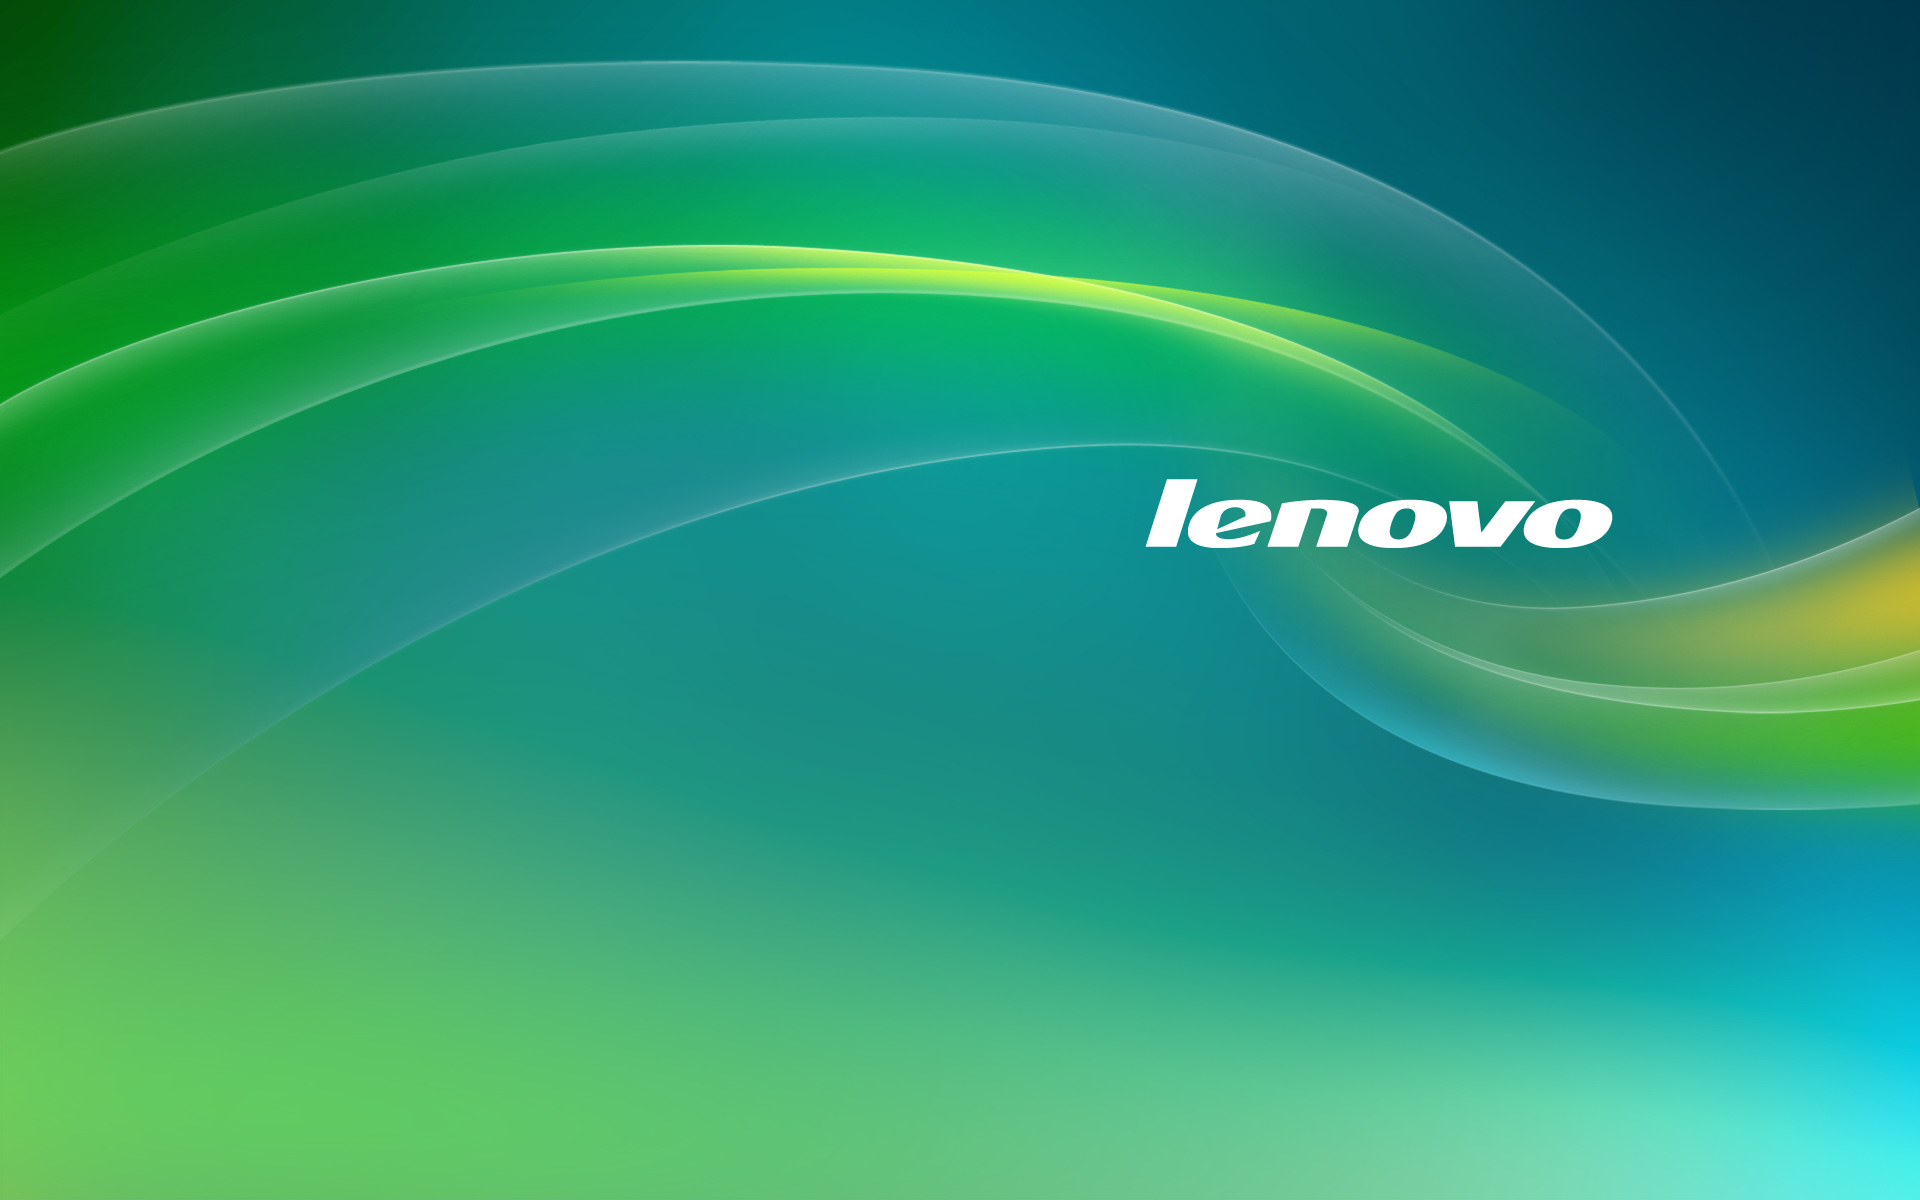 Lenovo Background